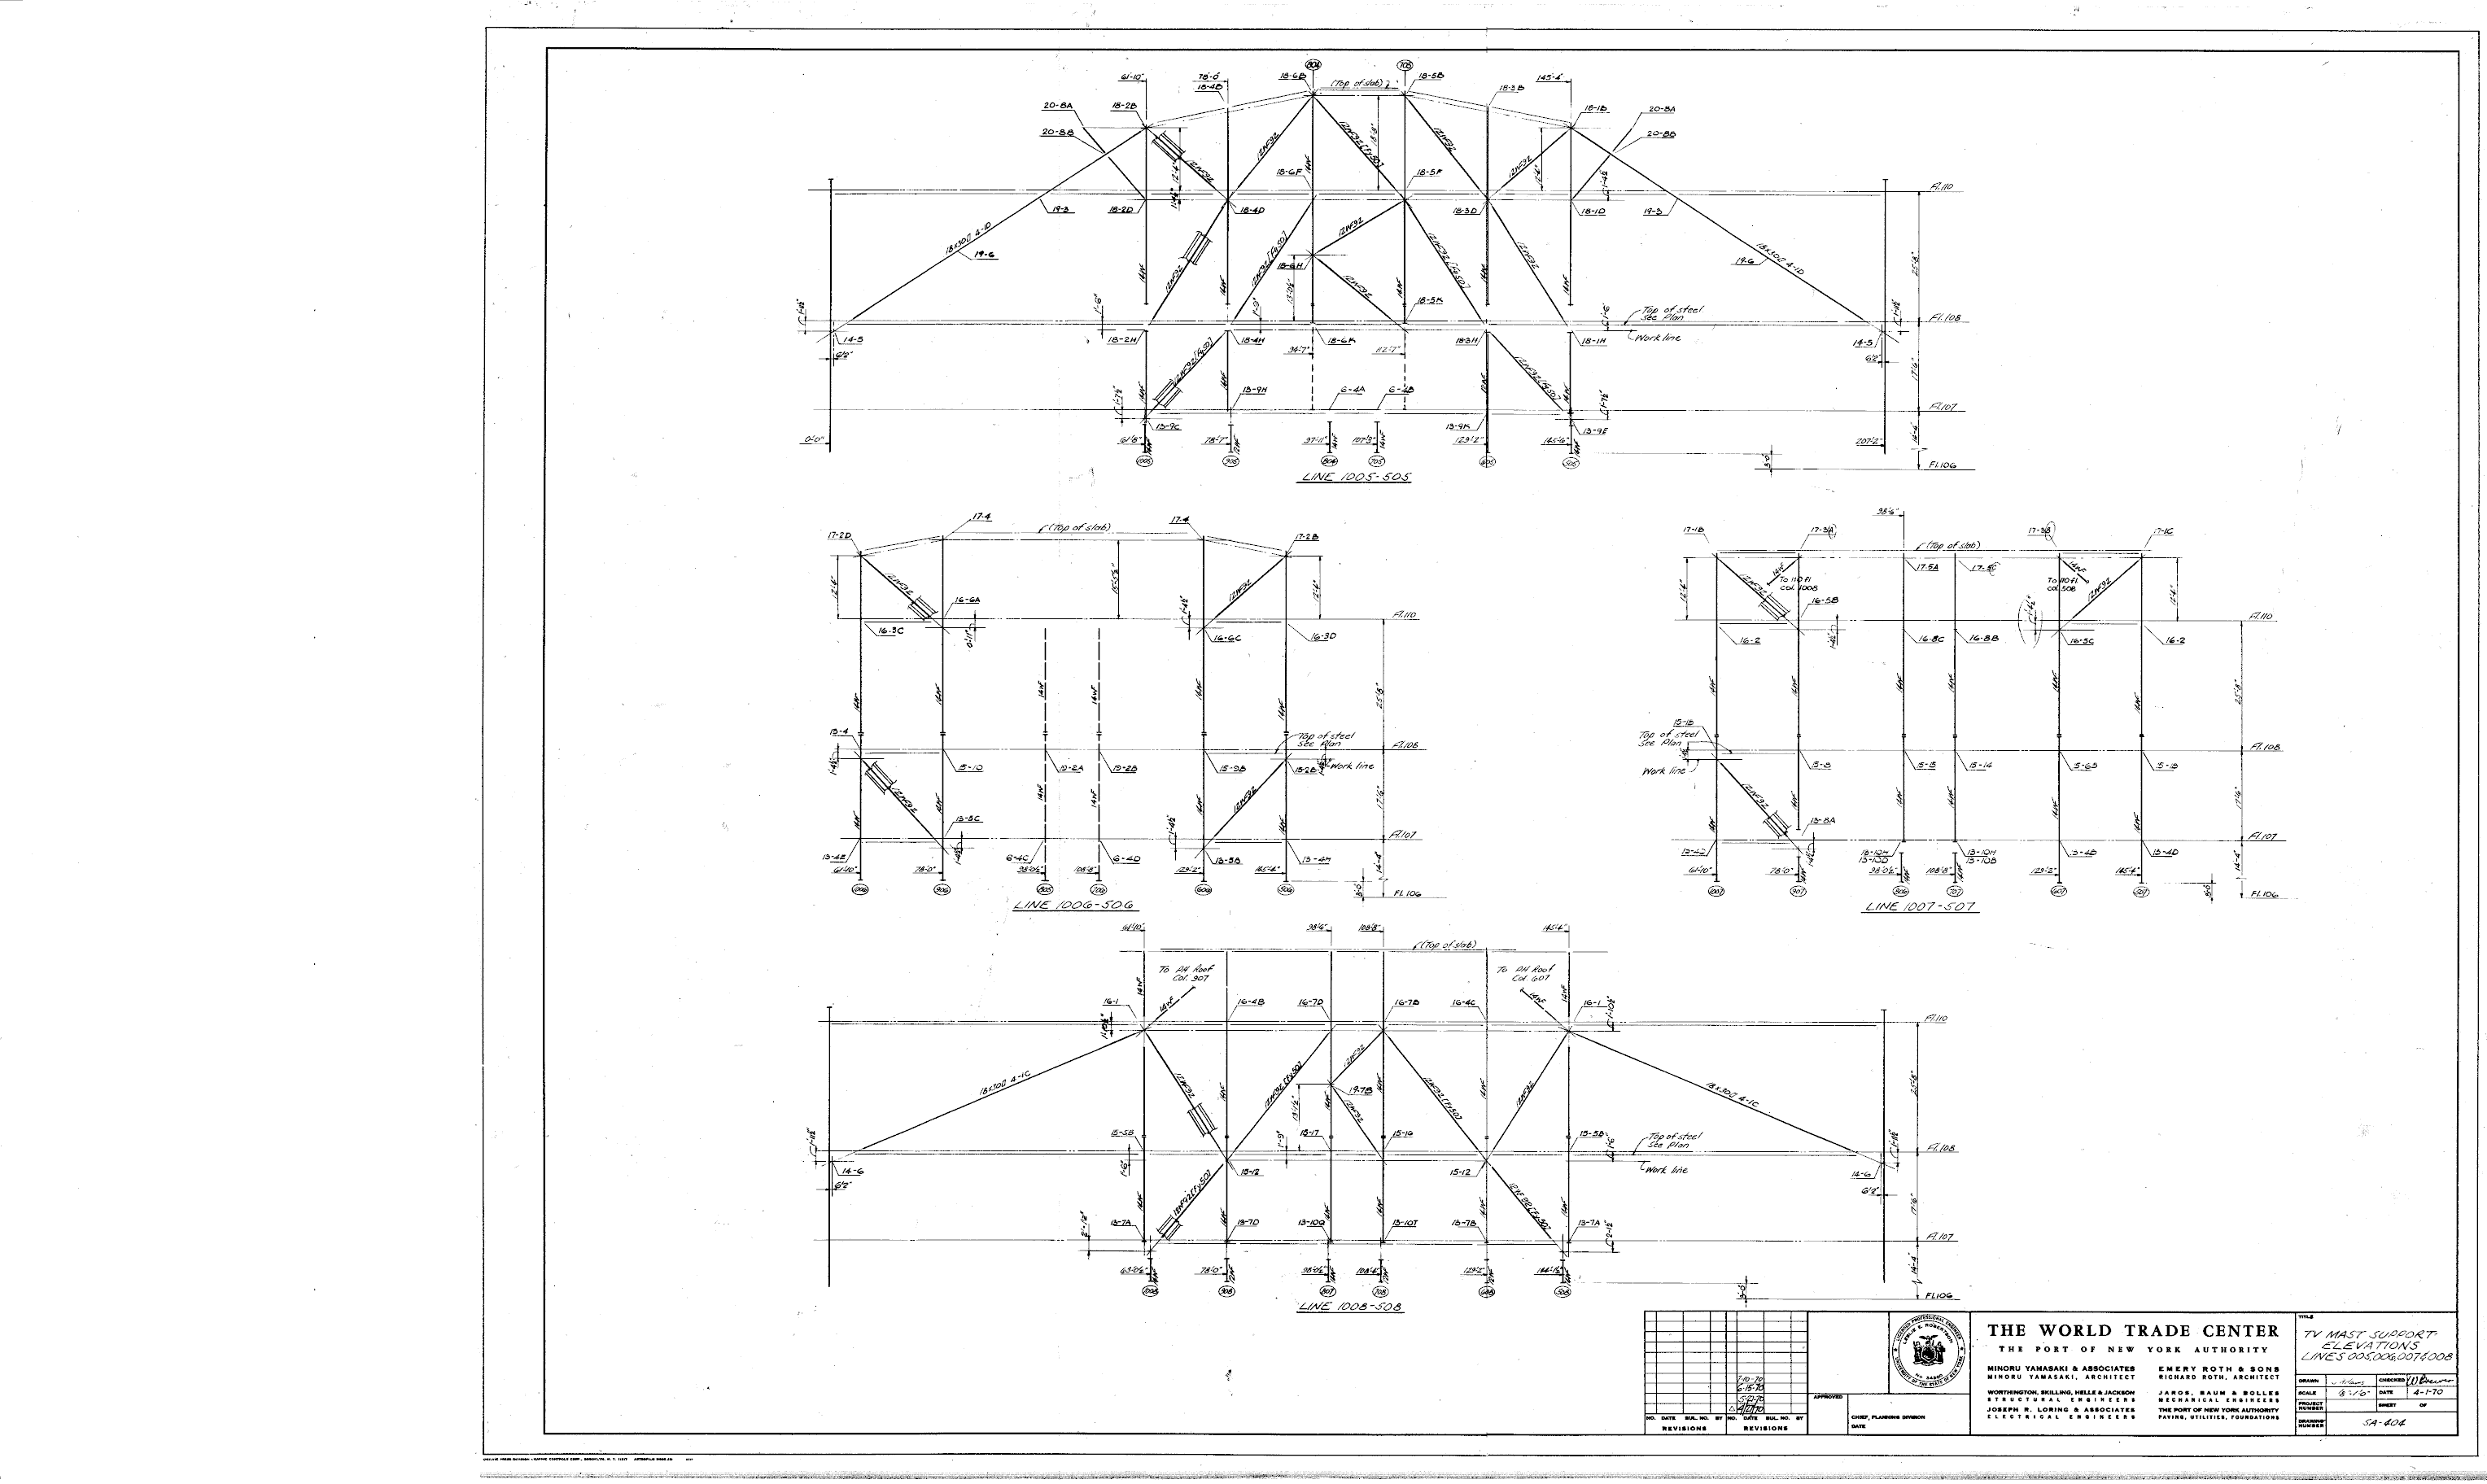 Architecture Drawing Png perfect architecture drawing png typical section drawingpng inside